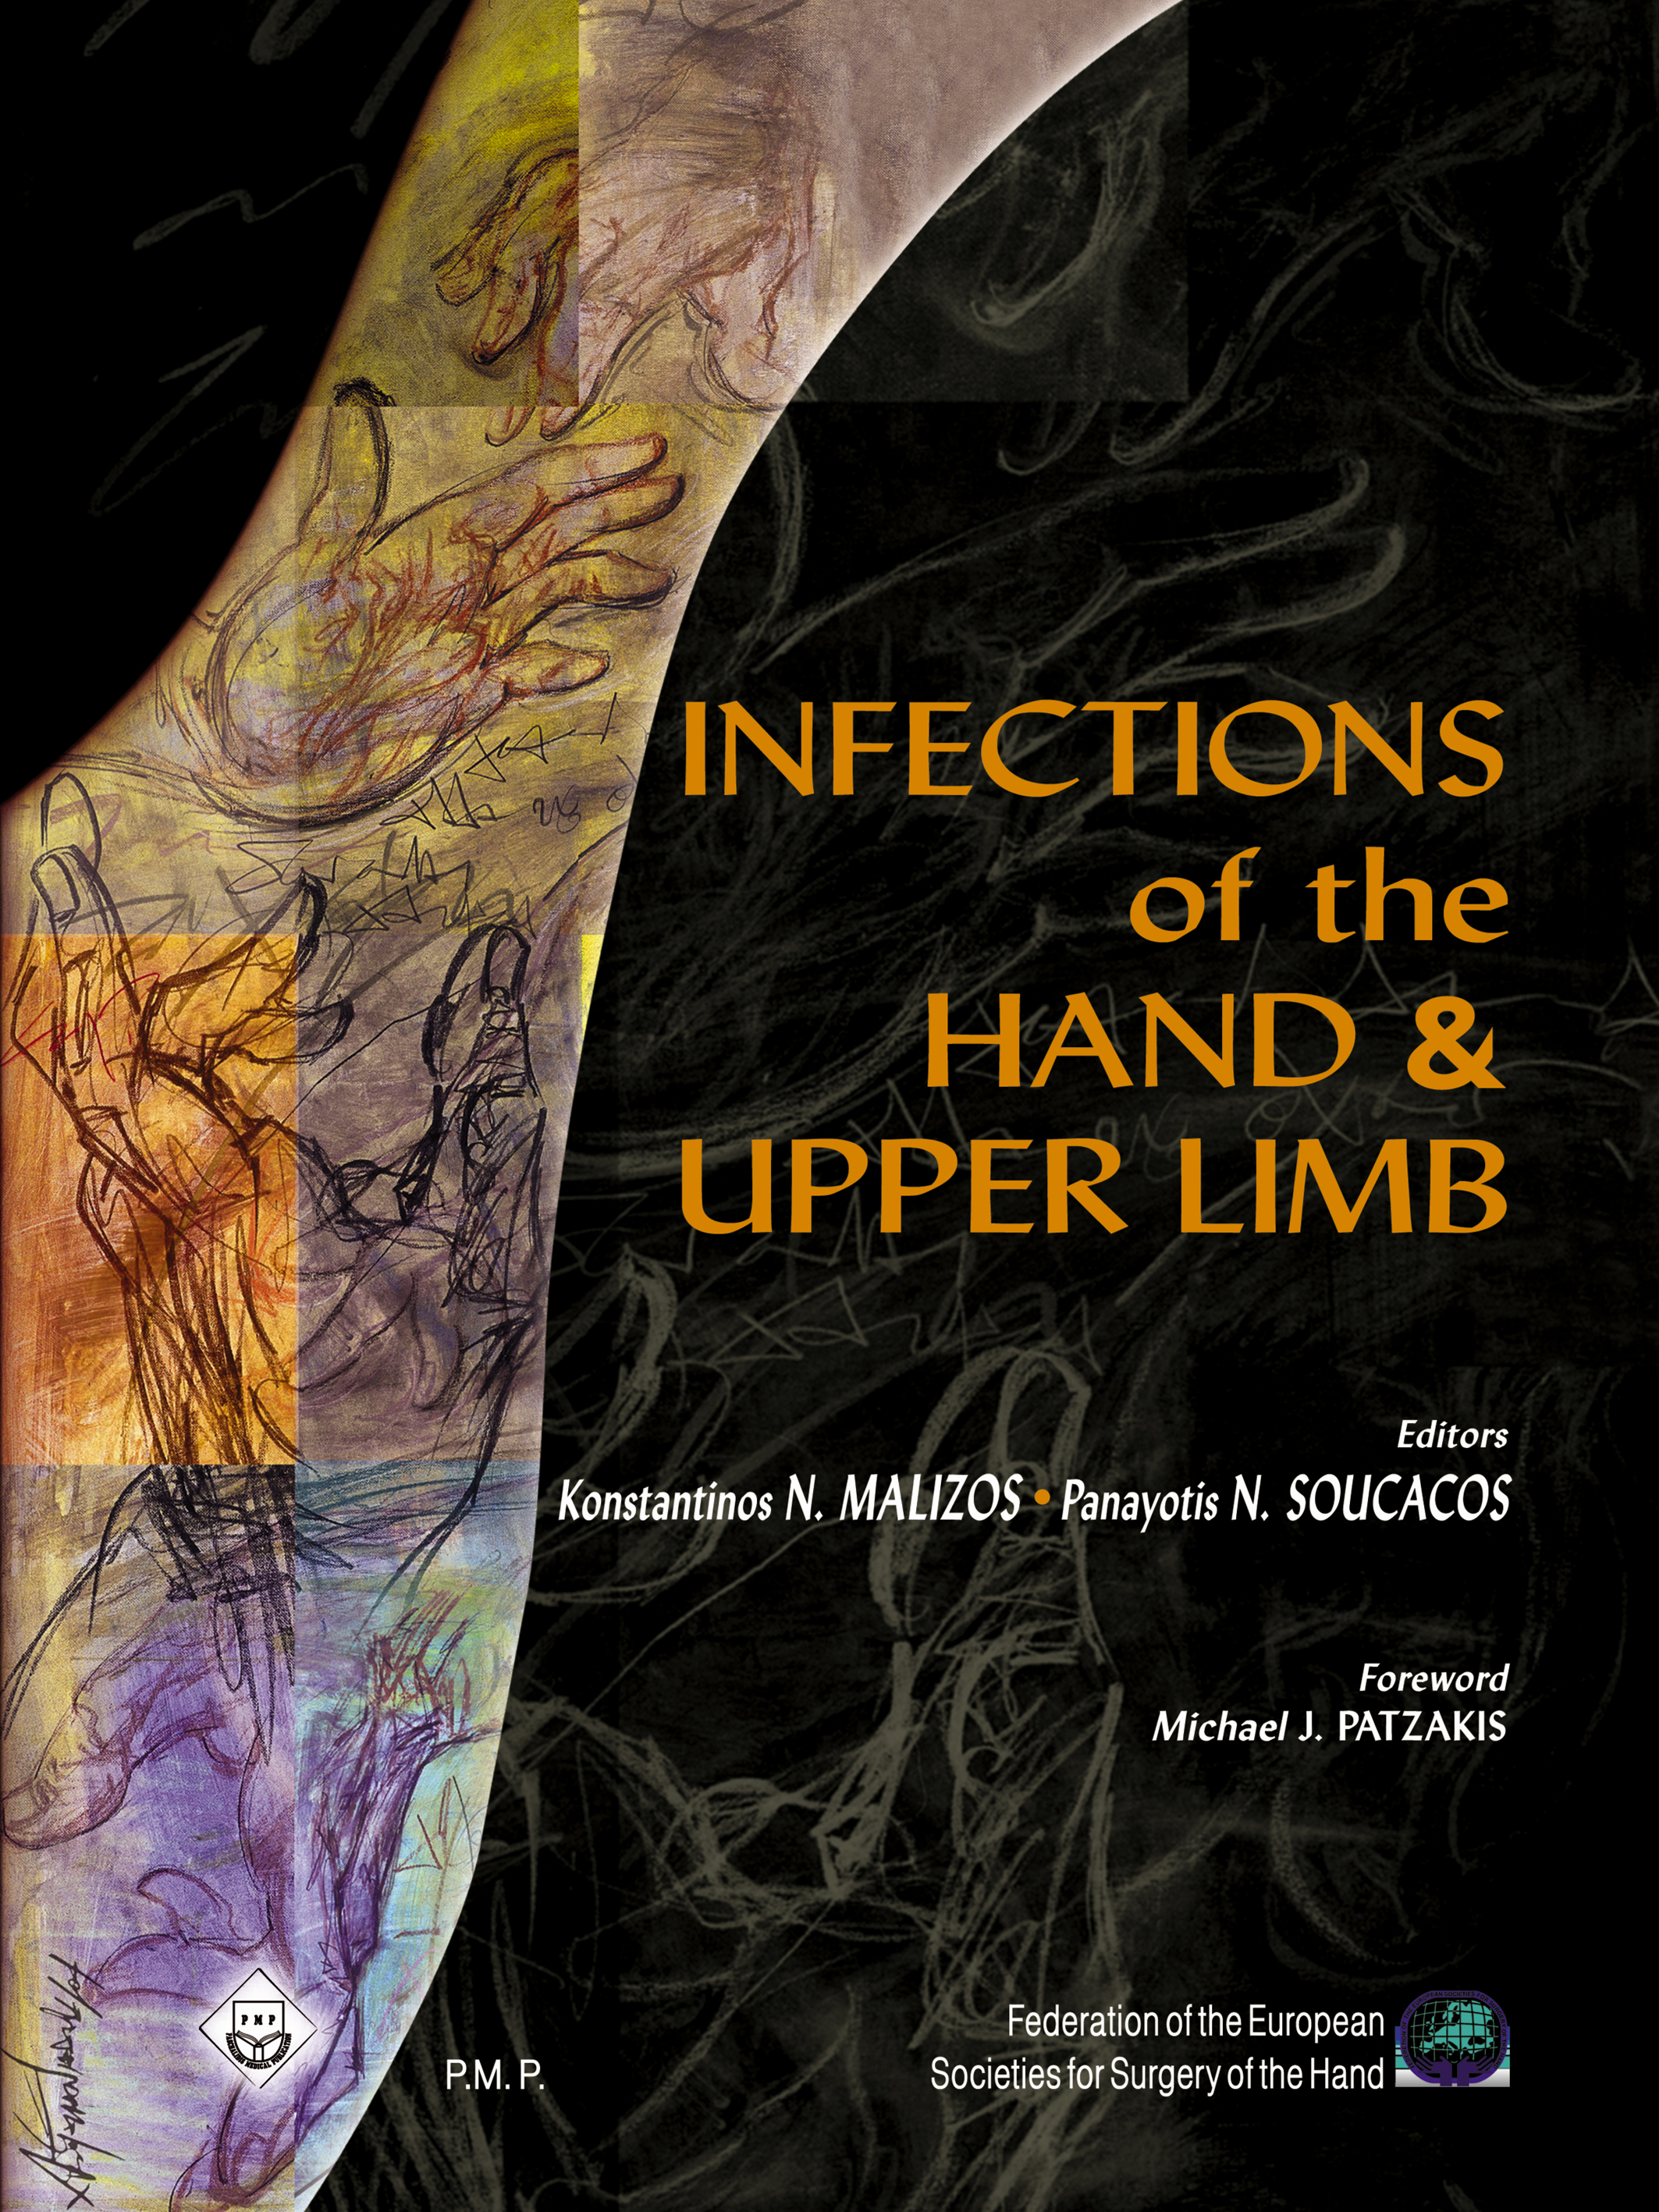 Infections of the Hand & Upper Limb